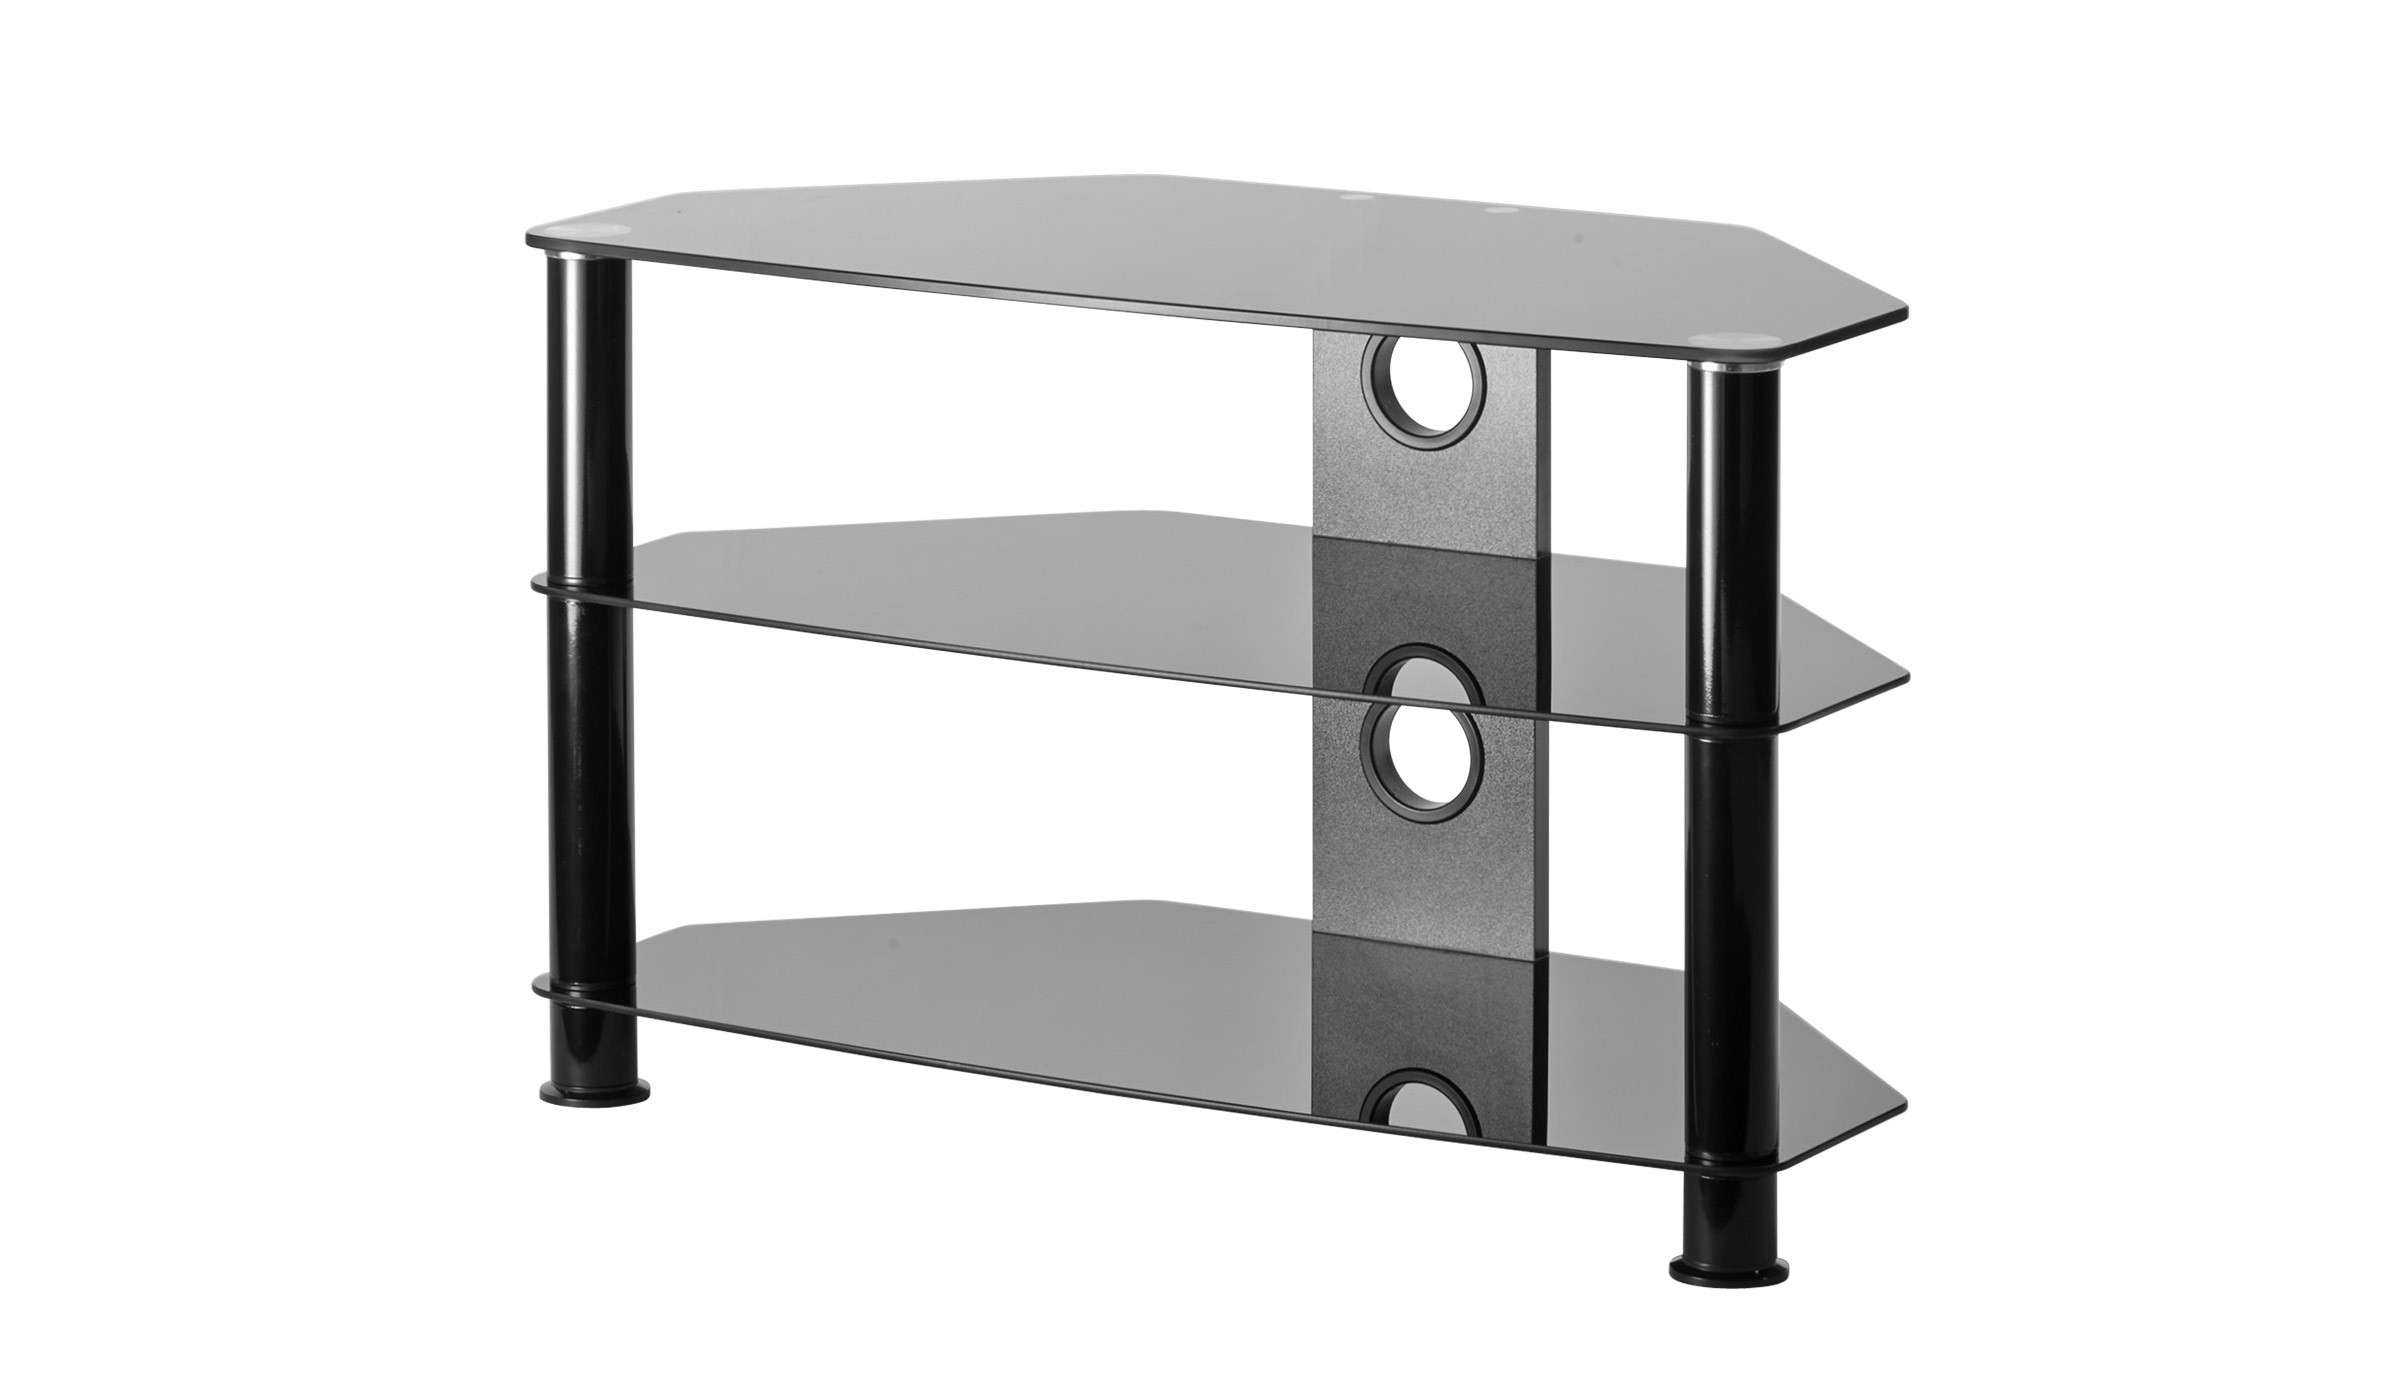 Black Glass Corner Tv Stand Up To 37 Inch Tv | Mmt Db800 Throughout Glass Tv Stands (View 2 of 15)